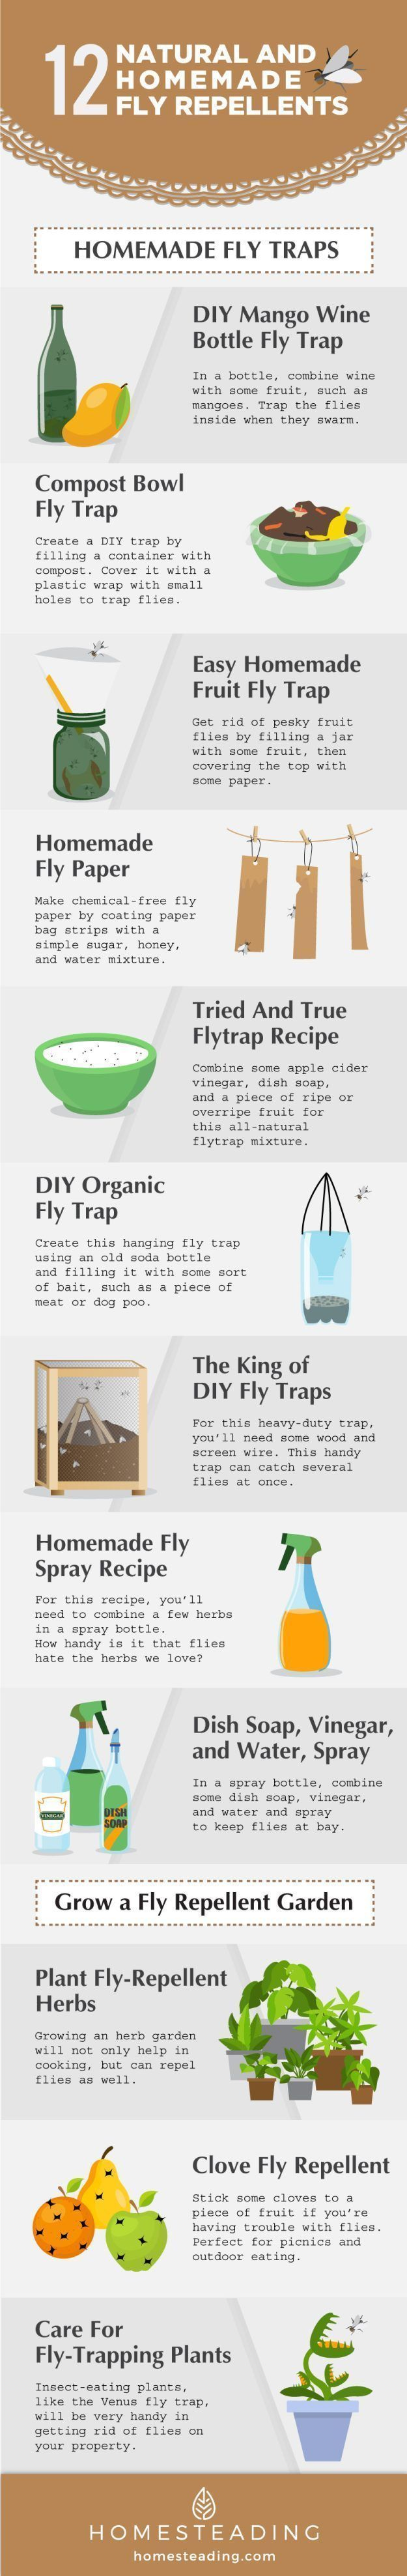 187 best Garden Pests images on Pinterest   Agriculture, Apartment ...